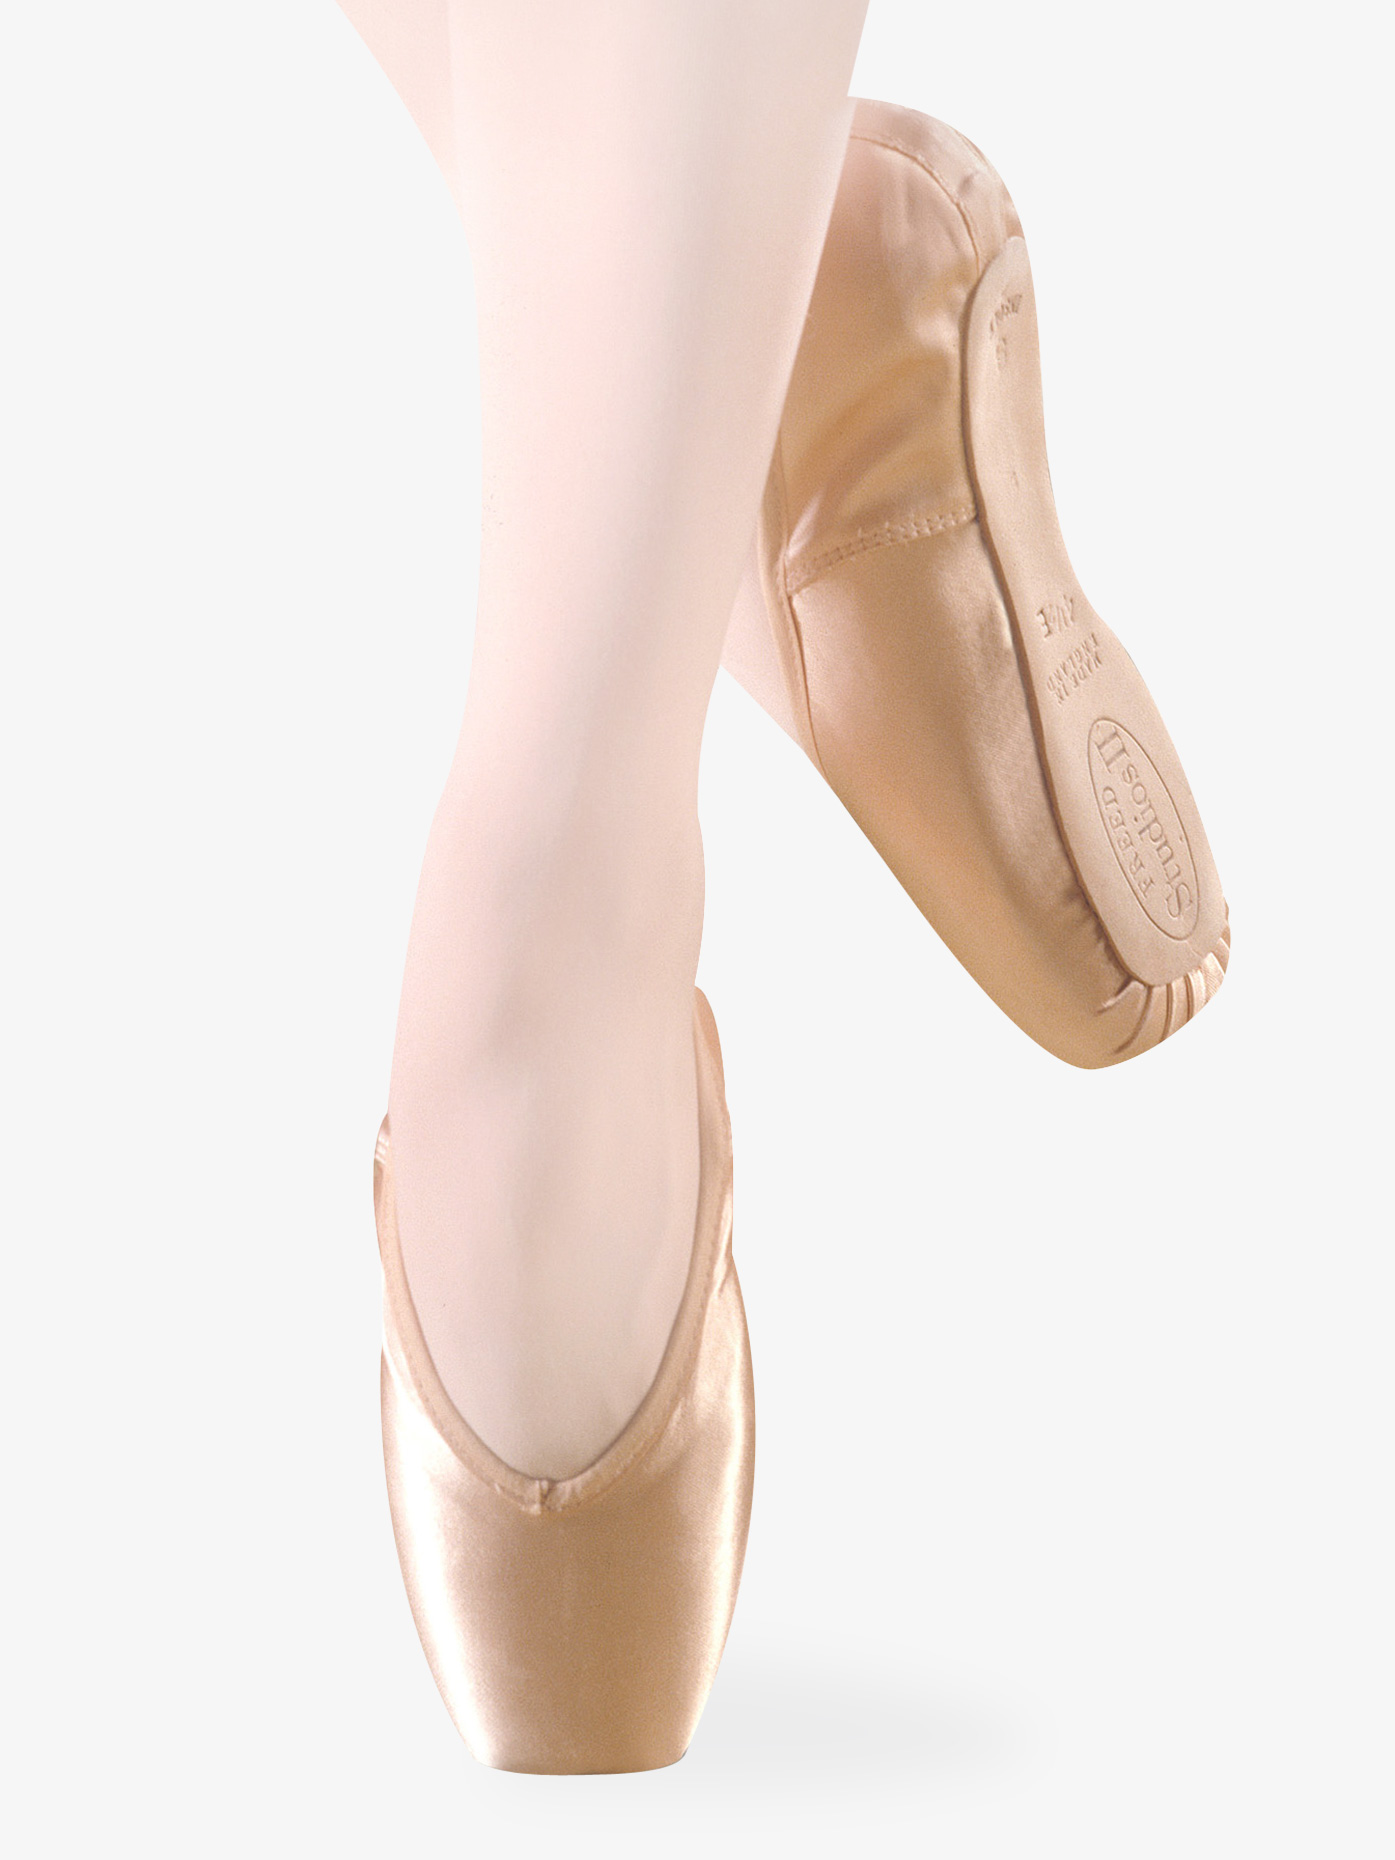 Freed of London Studios Pointe Shoes size 2 3.5 4 3 2.5